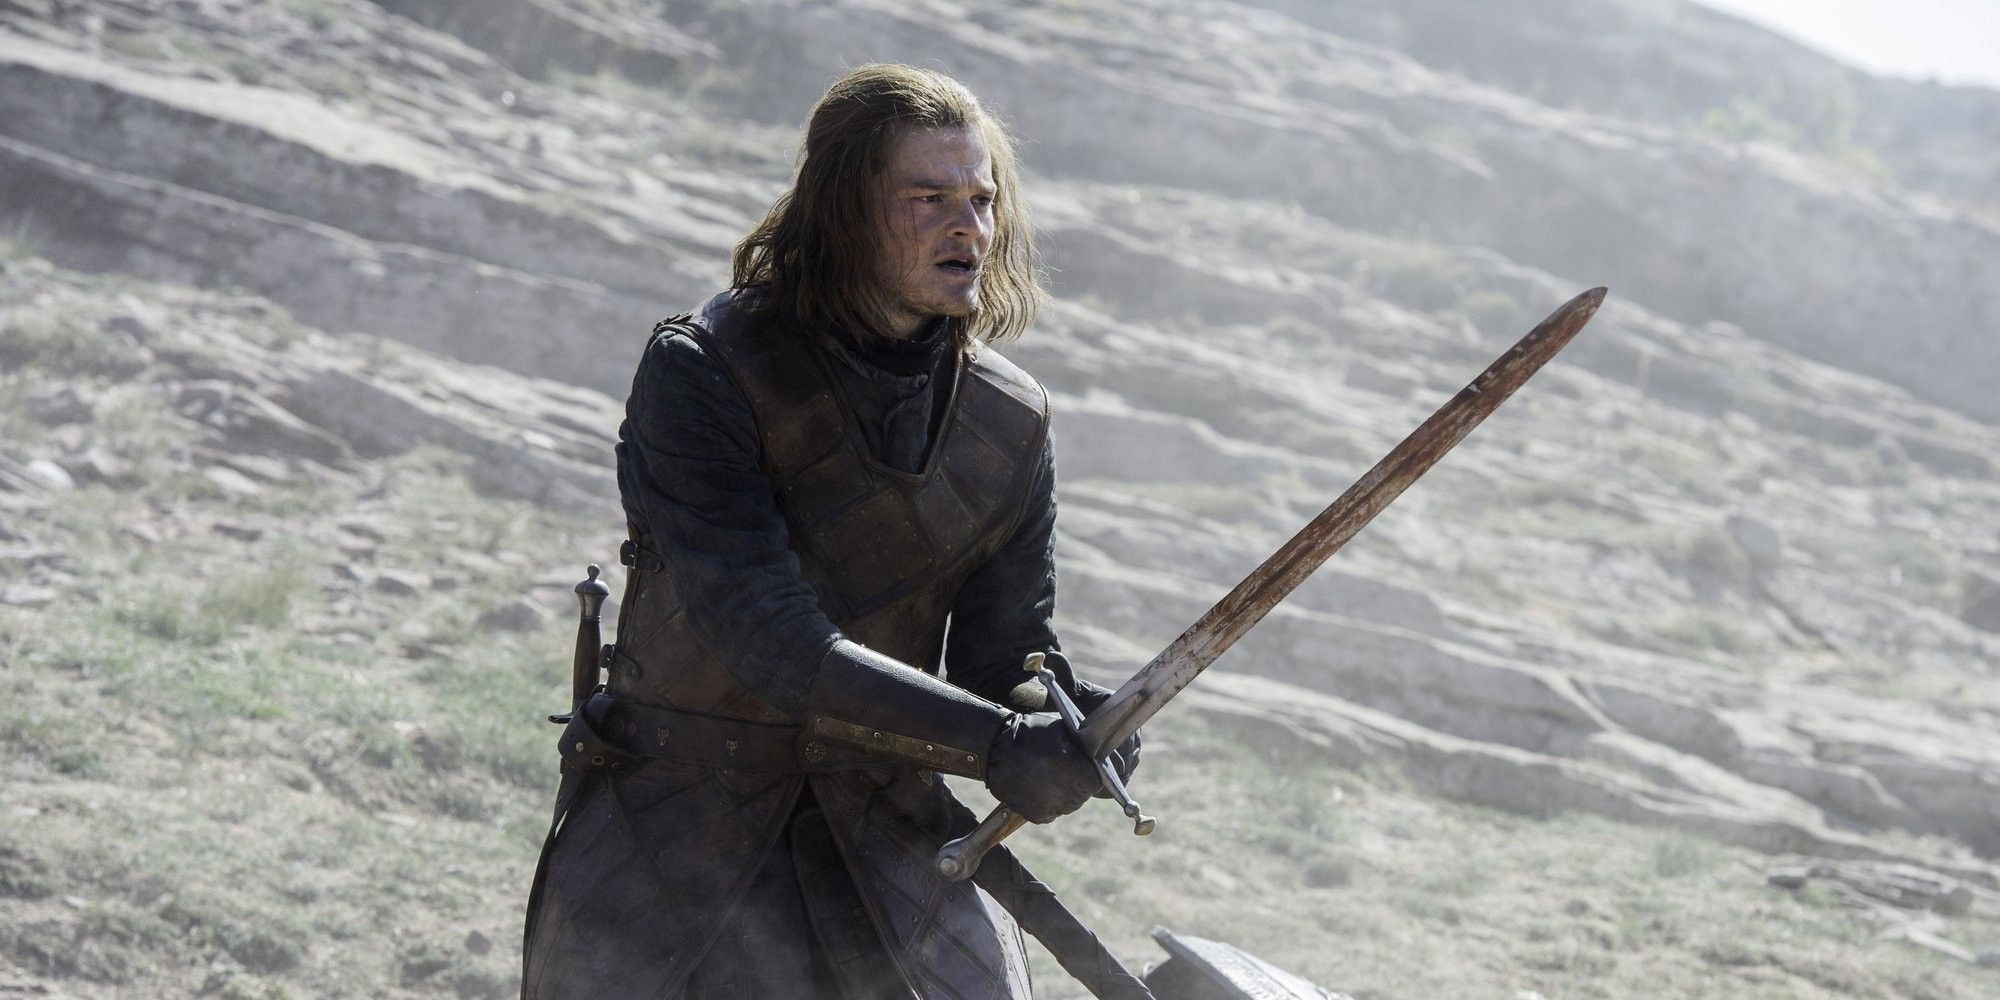 The Lord of the Rings Casts Young Ned Stark